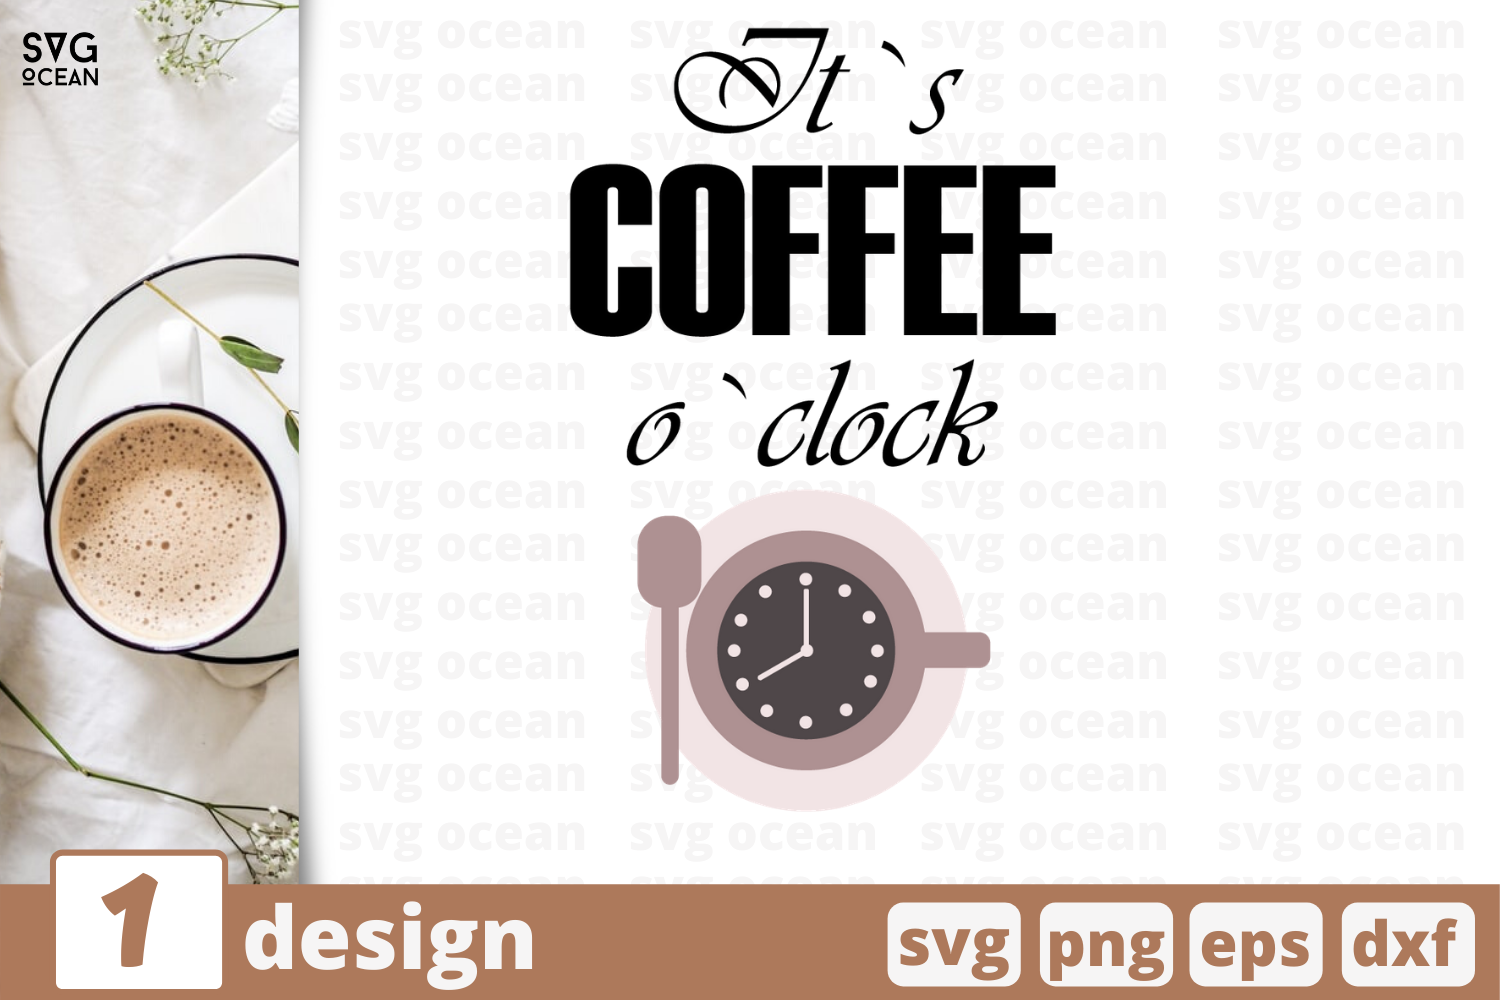 1 Its Coffee Oclock Svg Bundle Quotes Cricut Svg By Svgocean